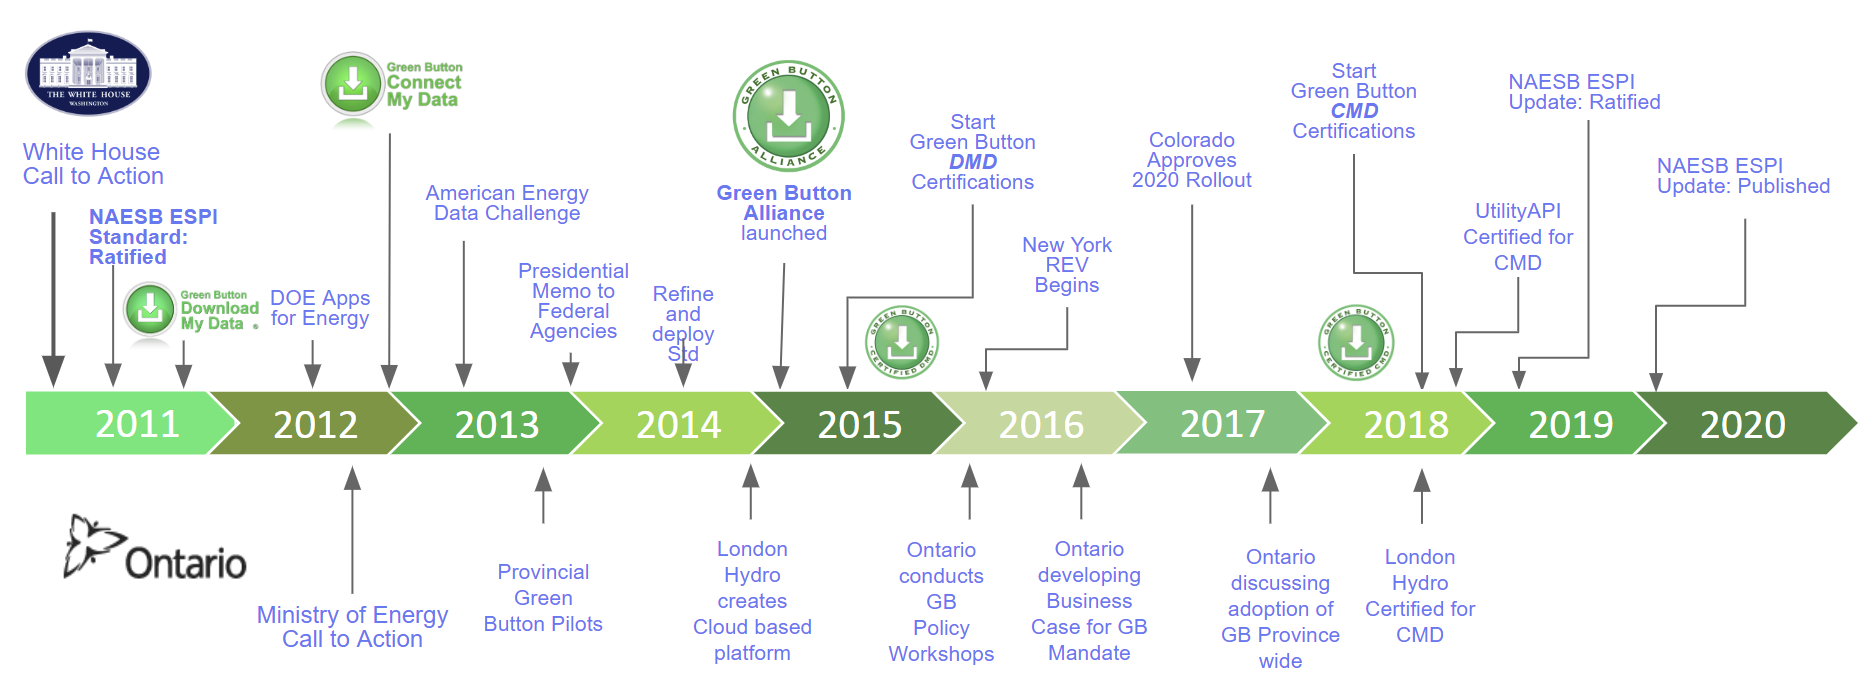 Timeline of Green Button events